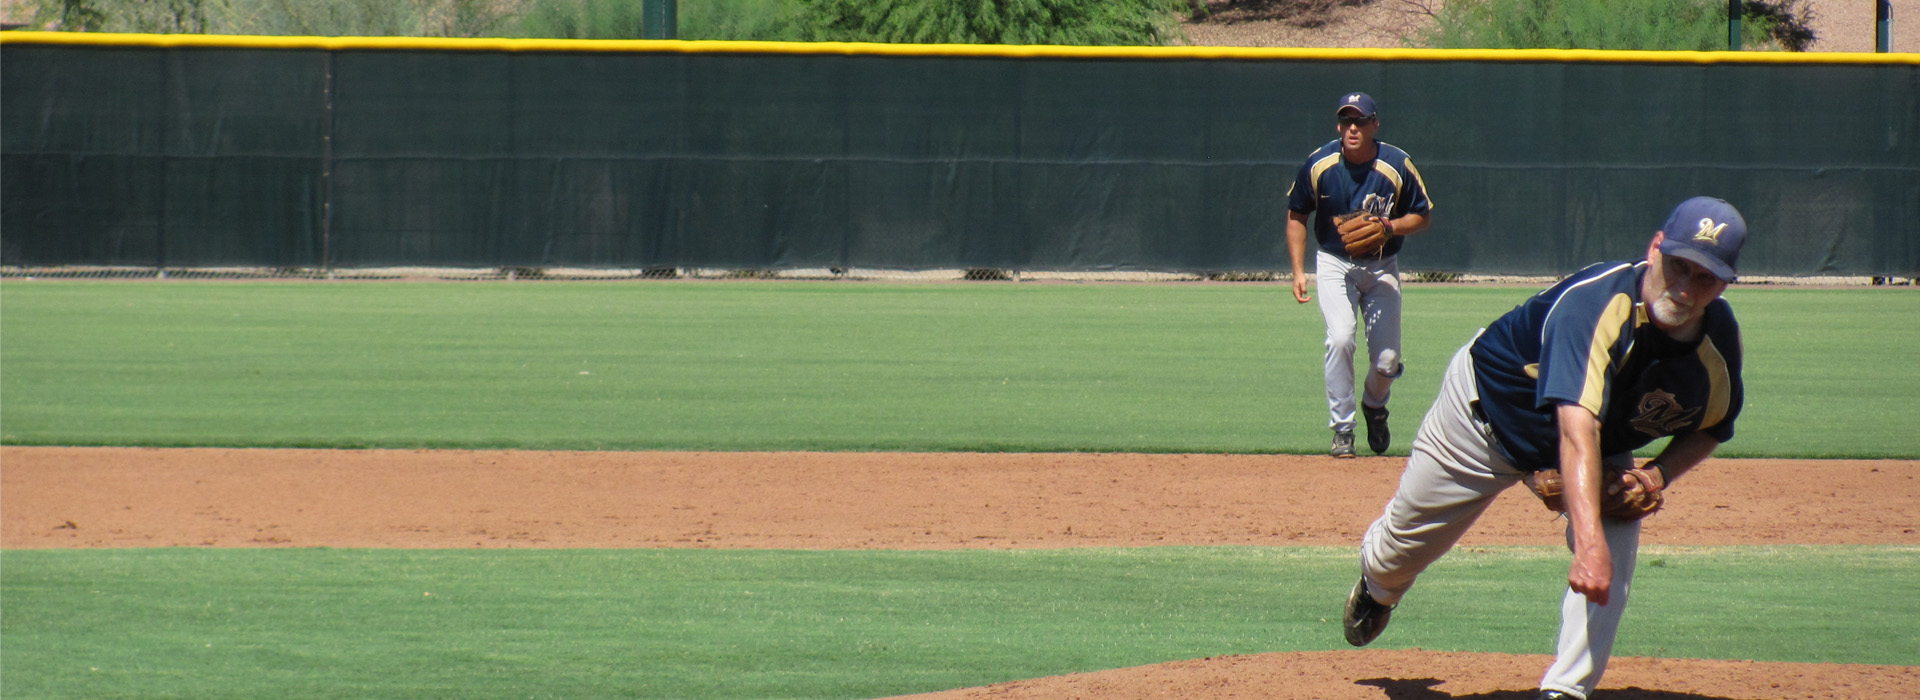 Arizona Men's Senior Baseball League - AZMSBL - Homepage